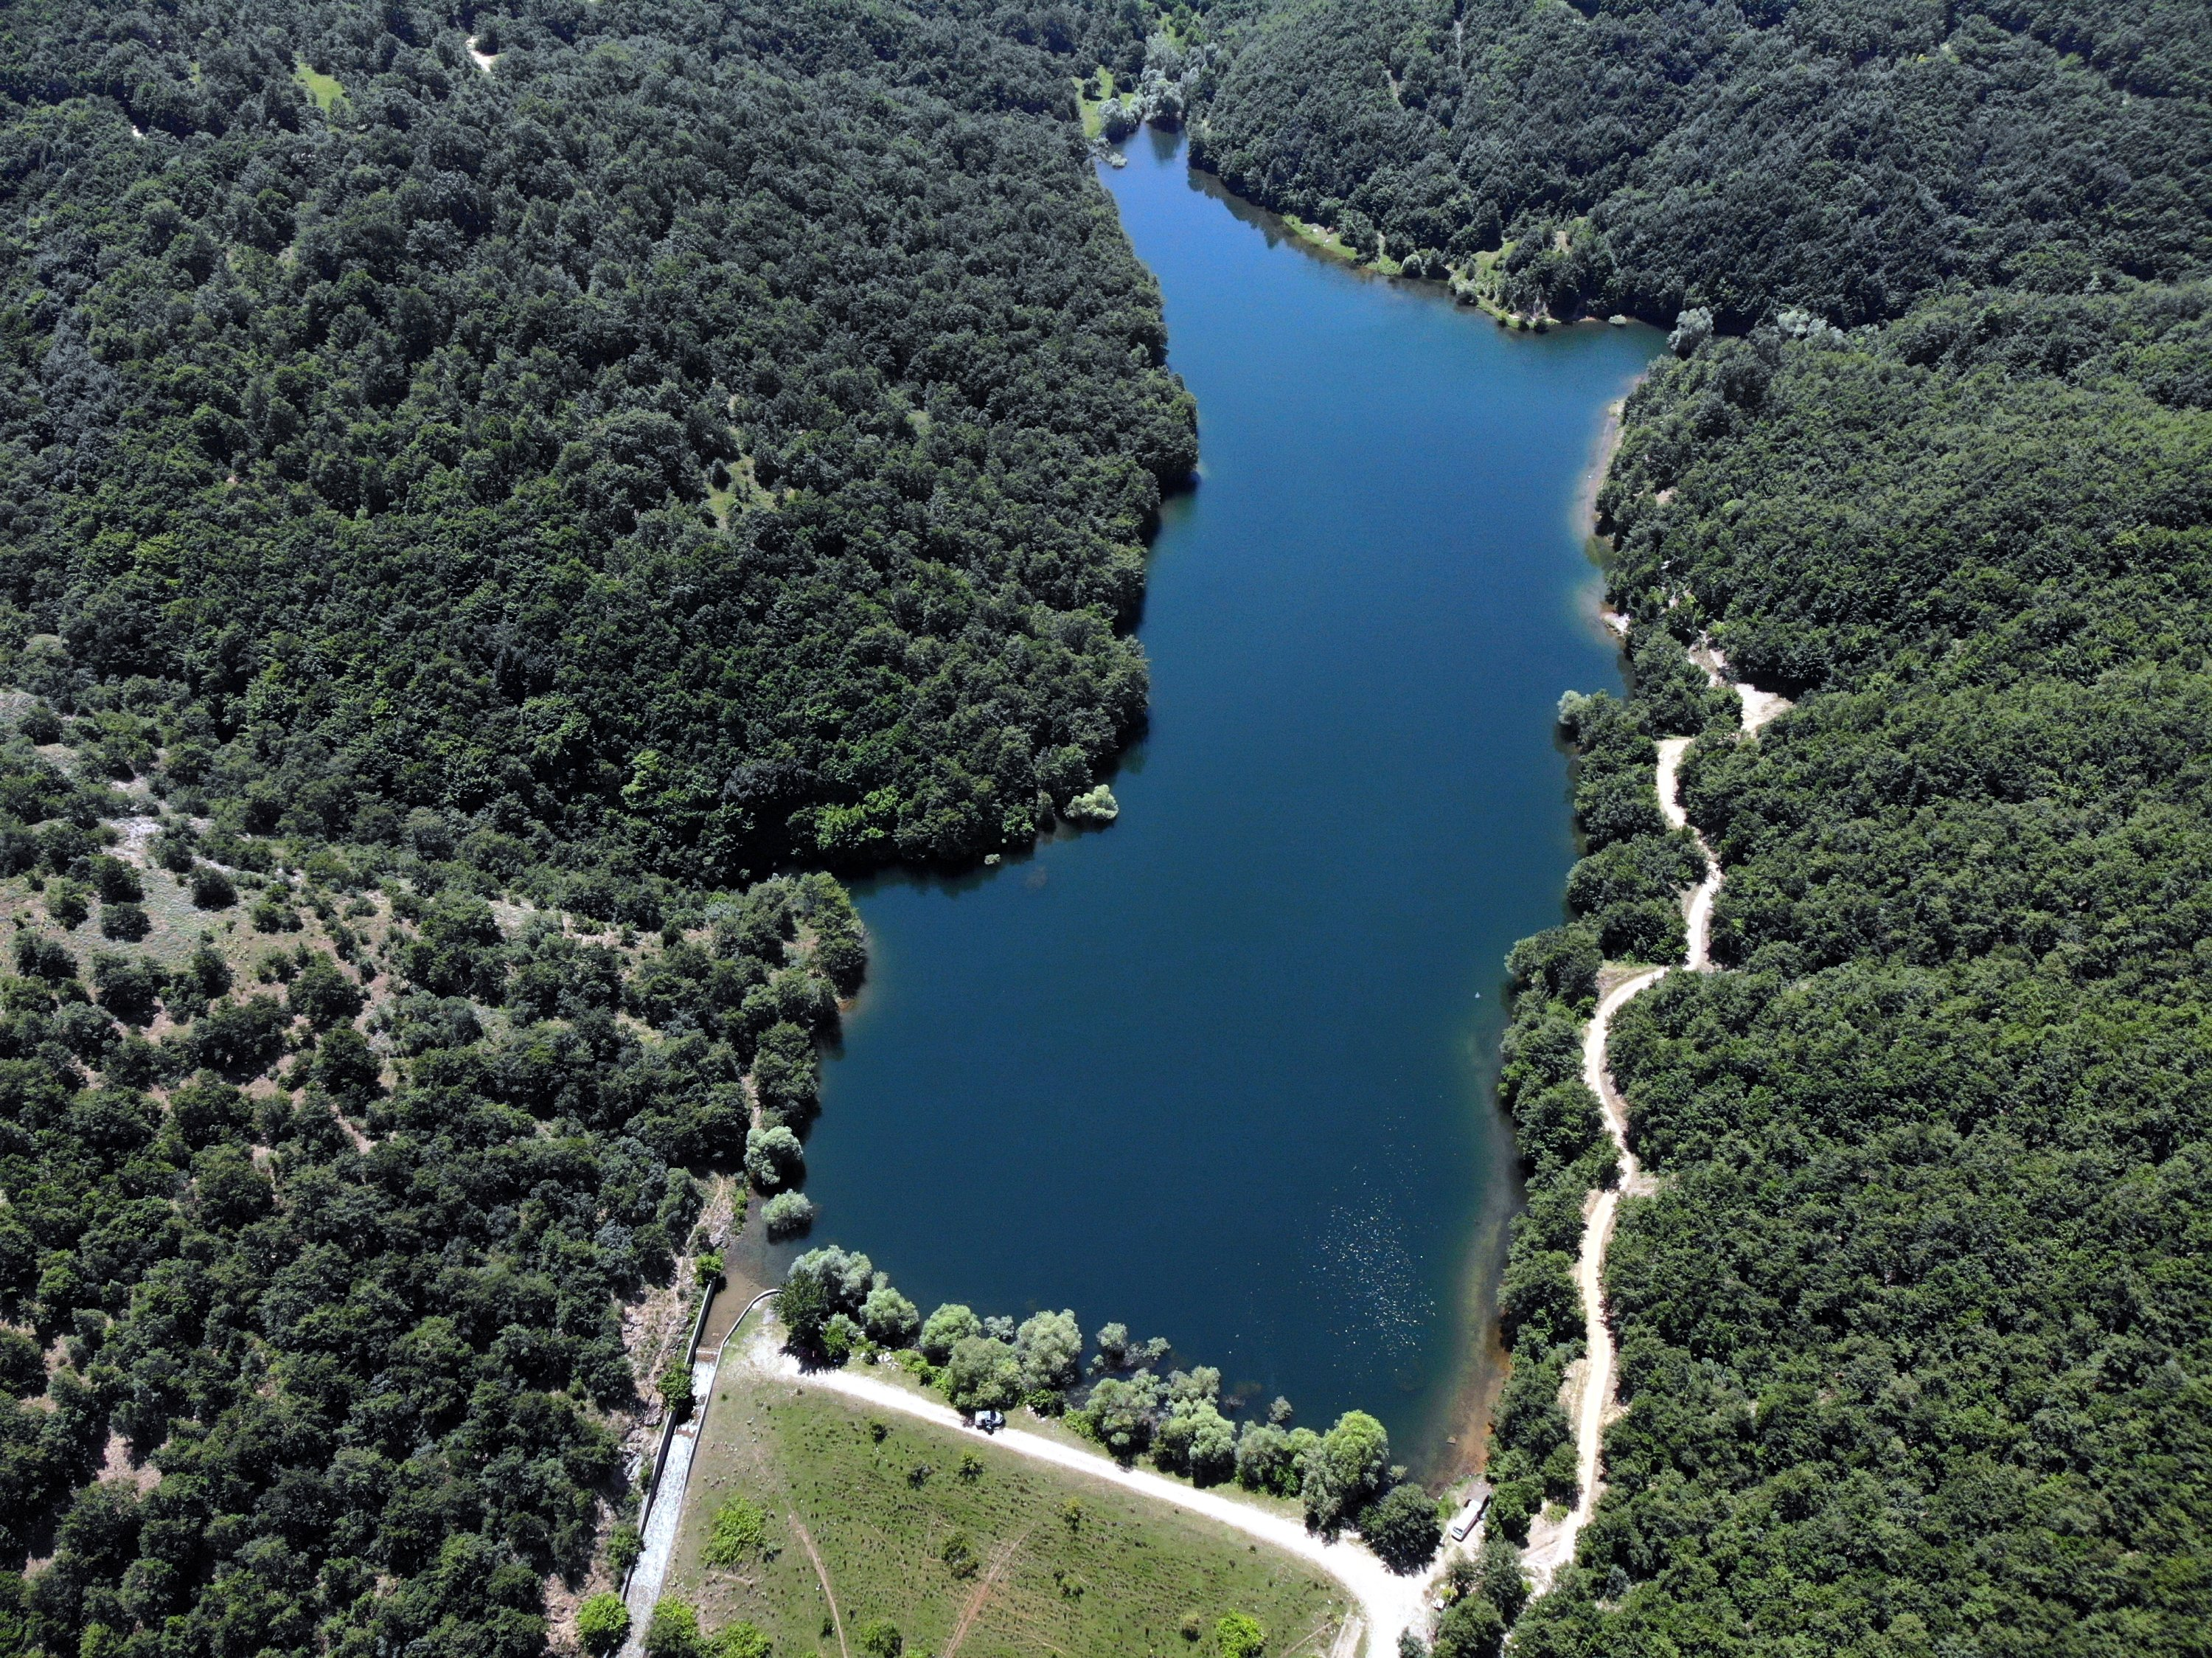 The eight ponds of Bilecik's Pazaryeri in Turkey's Marmara region continue to attract nature lovers and camping enthusiasts, July 8, 2020. (AA Photo)